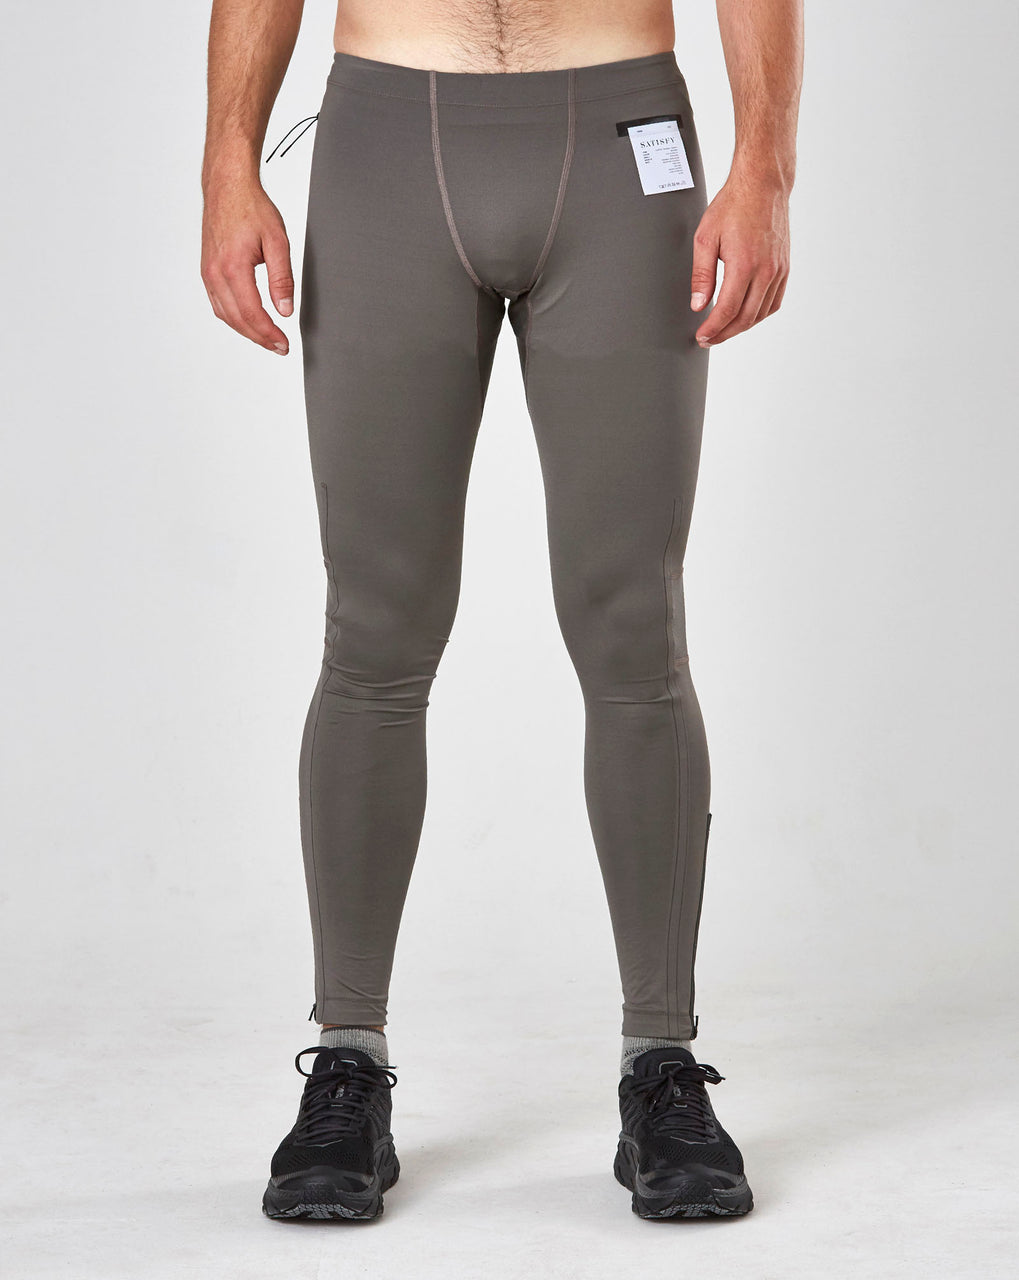 Satisfy Coffee Thermal Running Tights (Bronze)